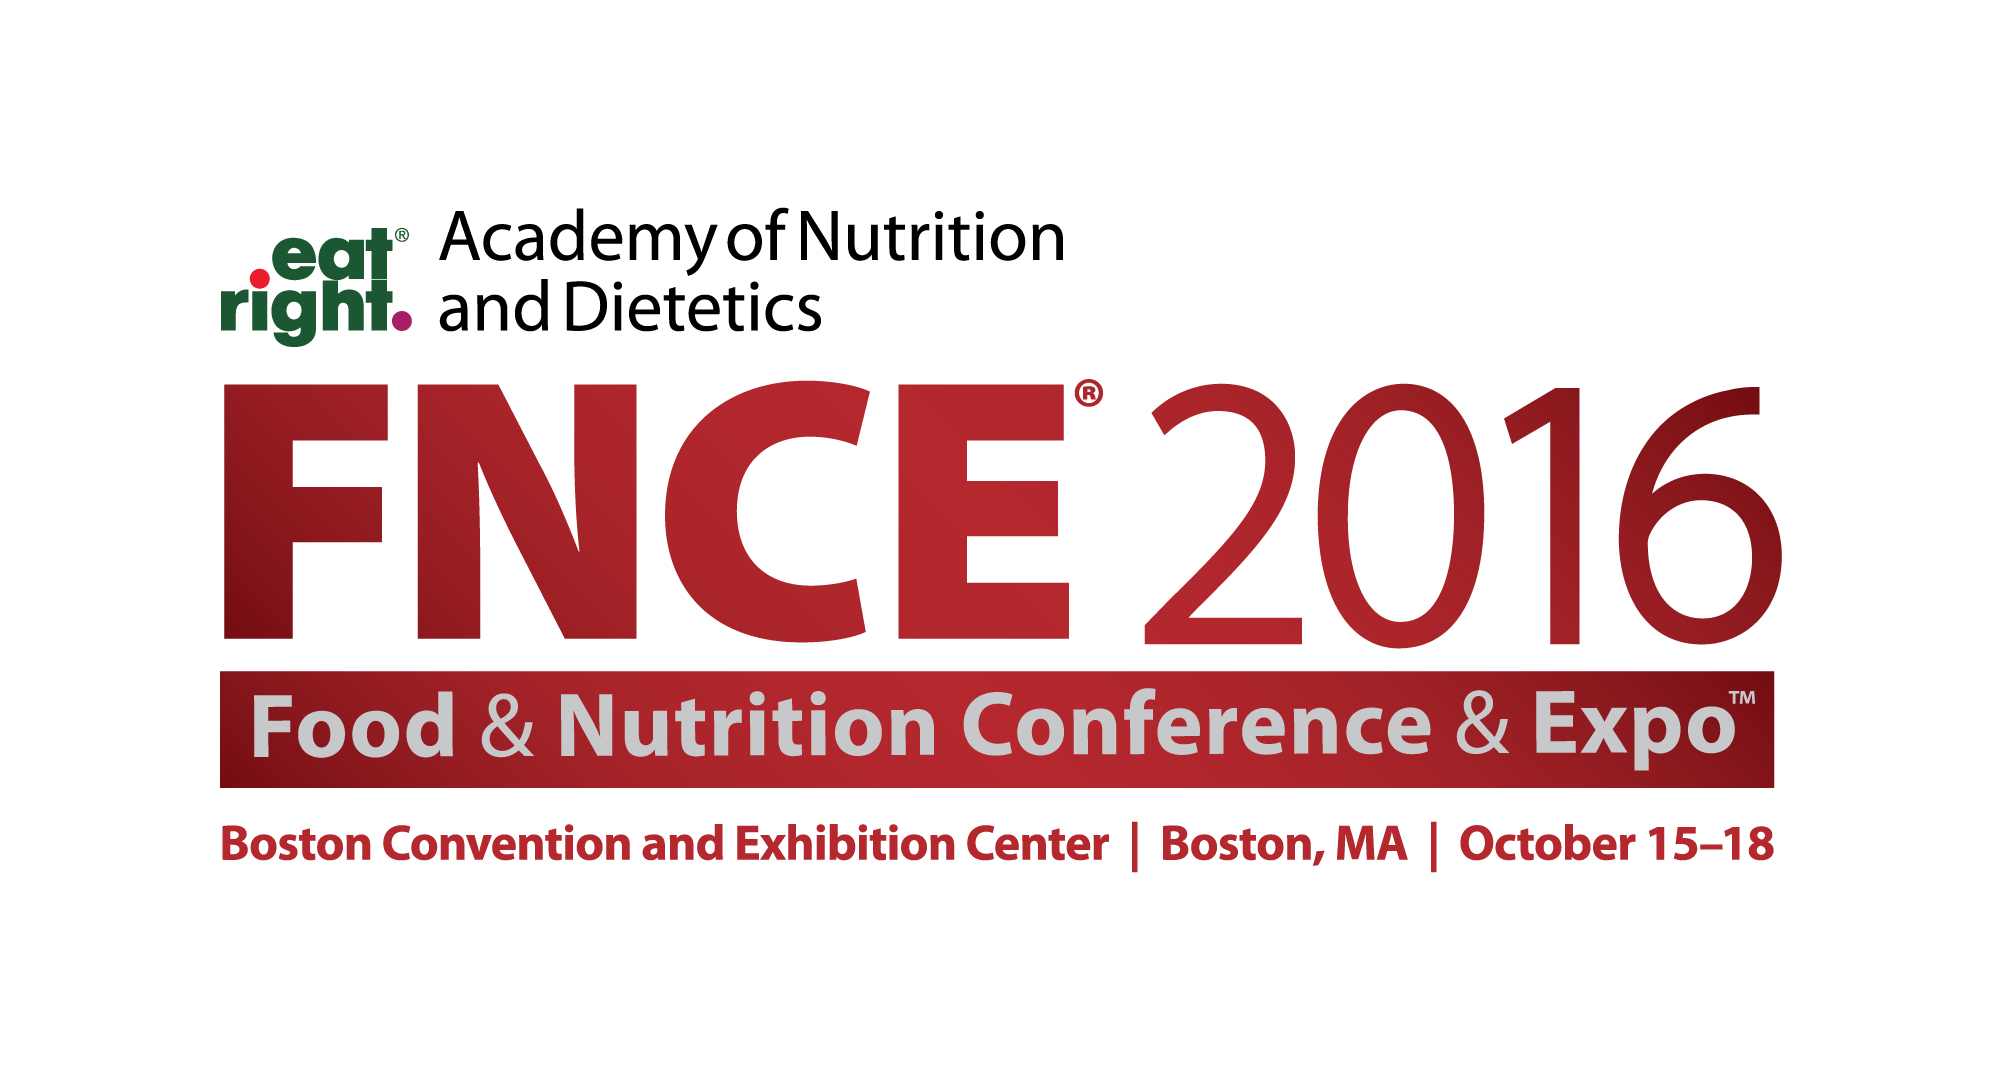 Academy Of Nutrition And Dietetics Sponsorship Update Dietitians